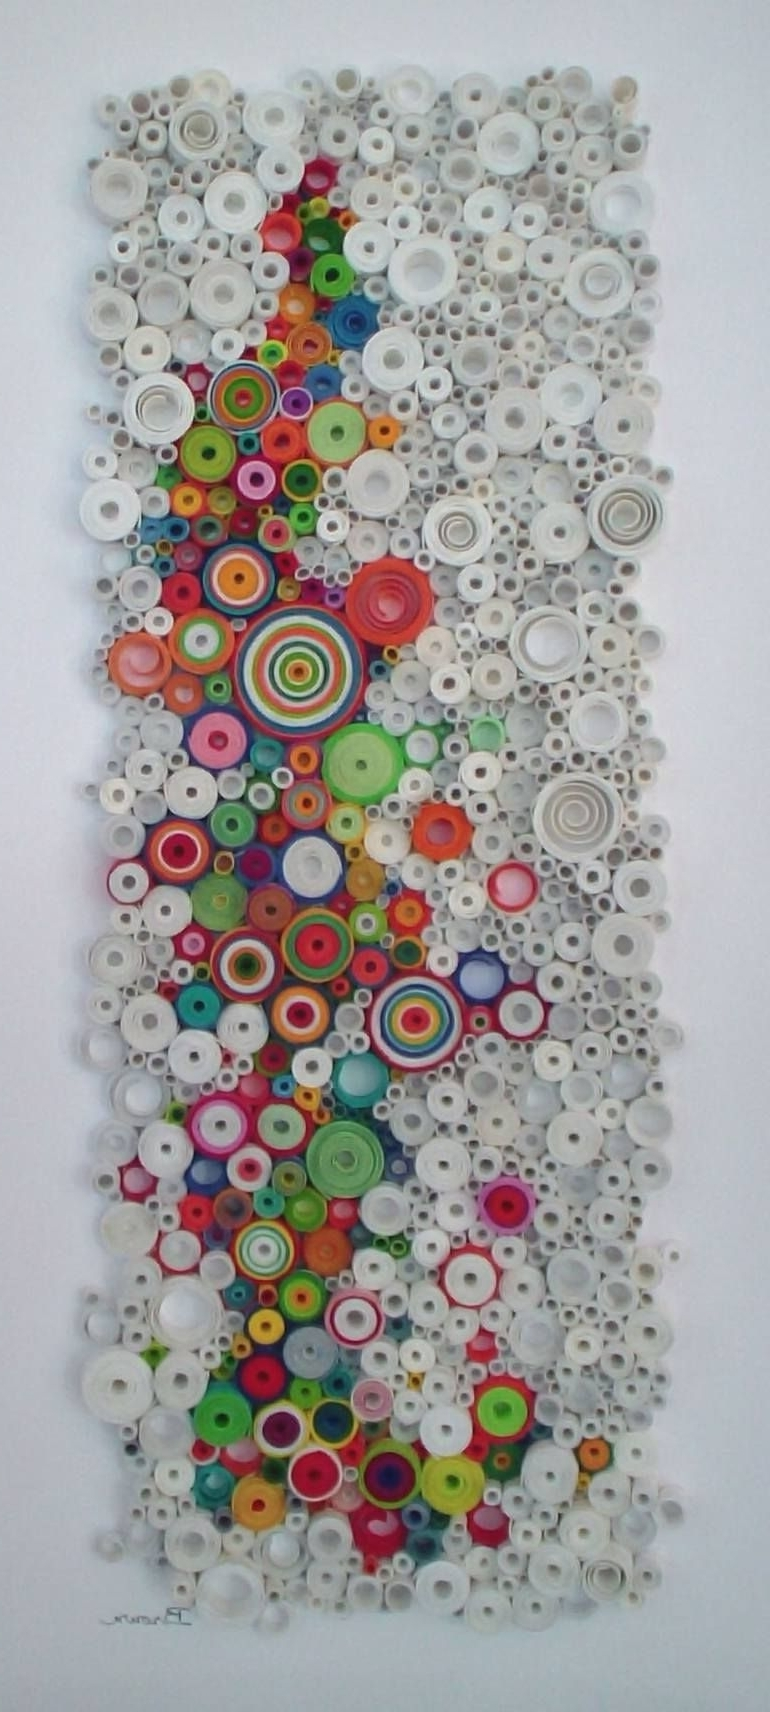 Preferred 3 Dimensional Wall Art With Modern Wall Art, Circular Wall Art, Original 3 Dimensional Paper (View 13 of 15)